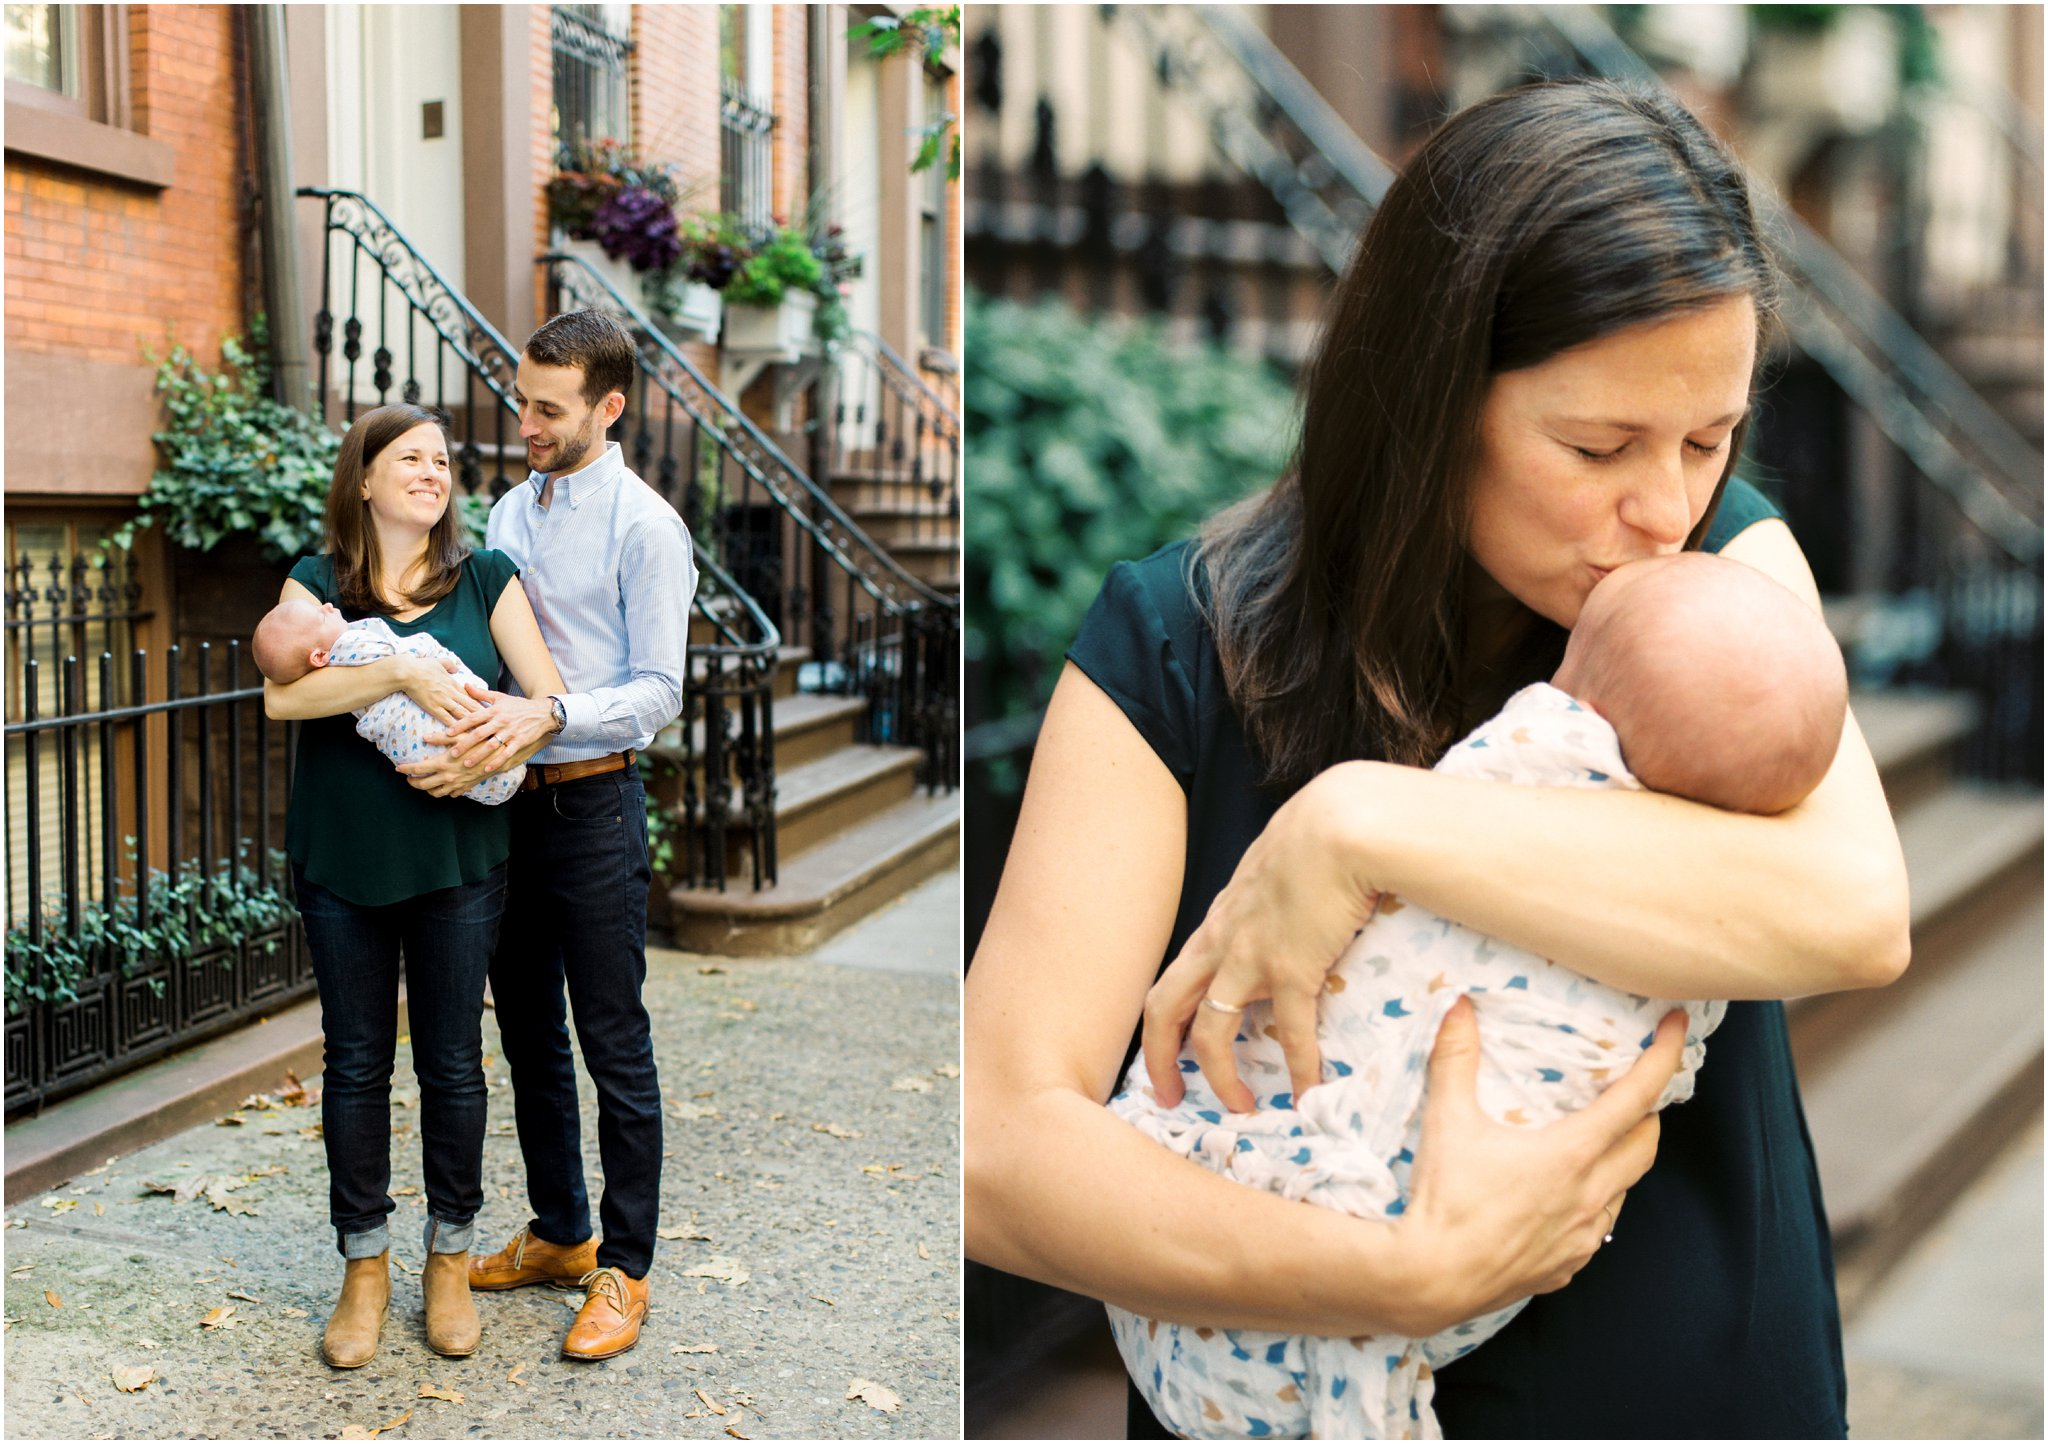 New york city newborn photos by charlottesville family photographer, amy nicole photography-010